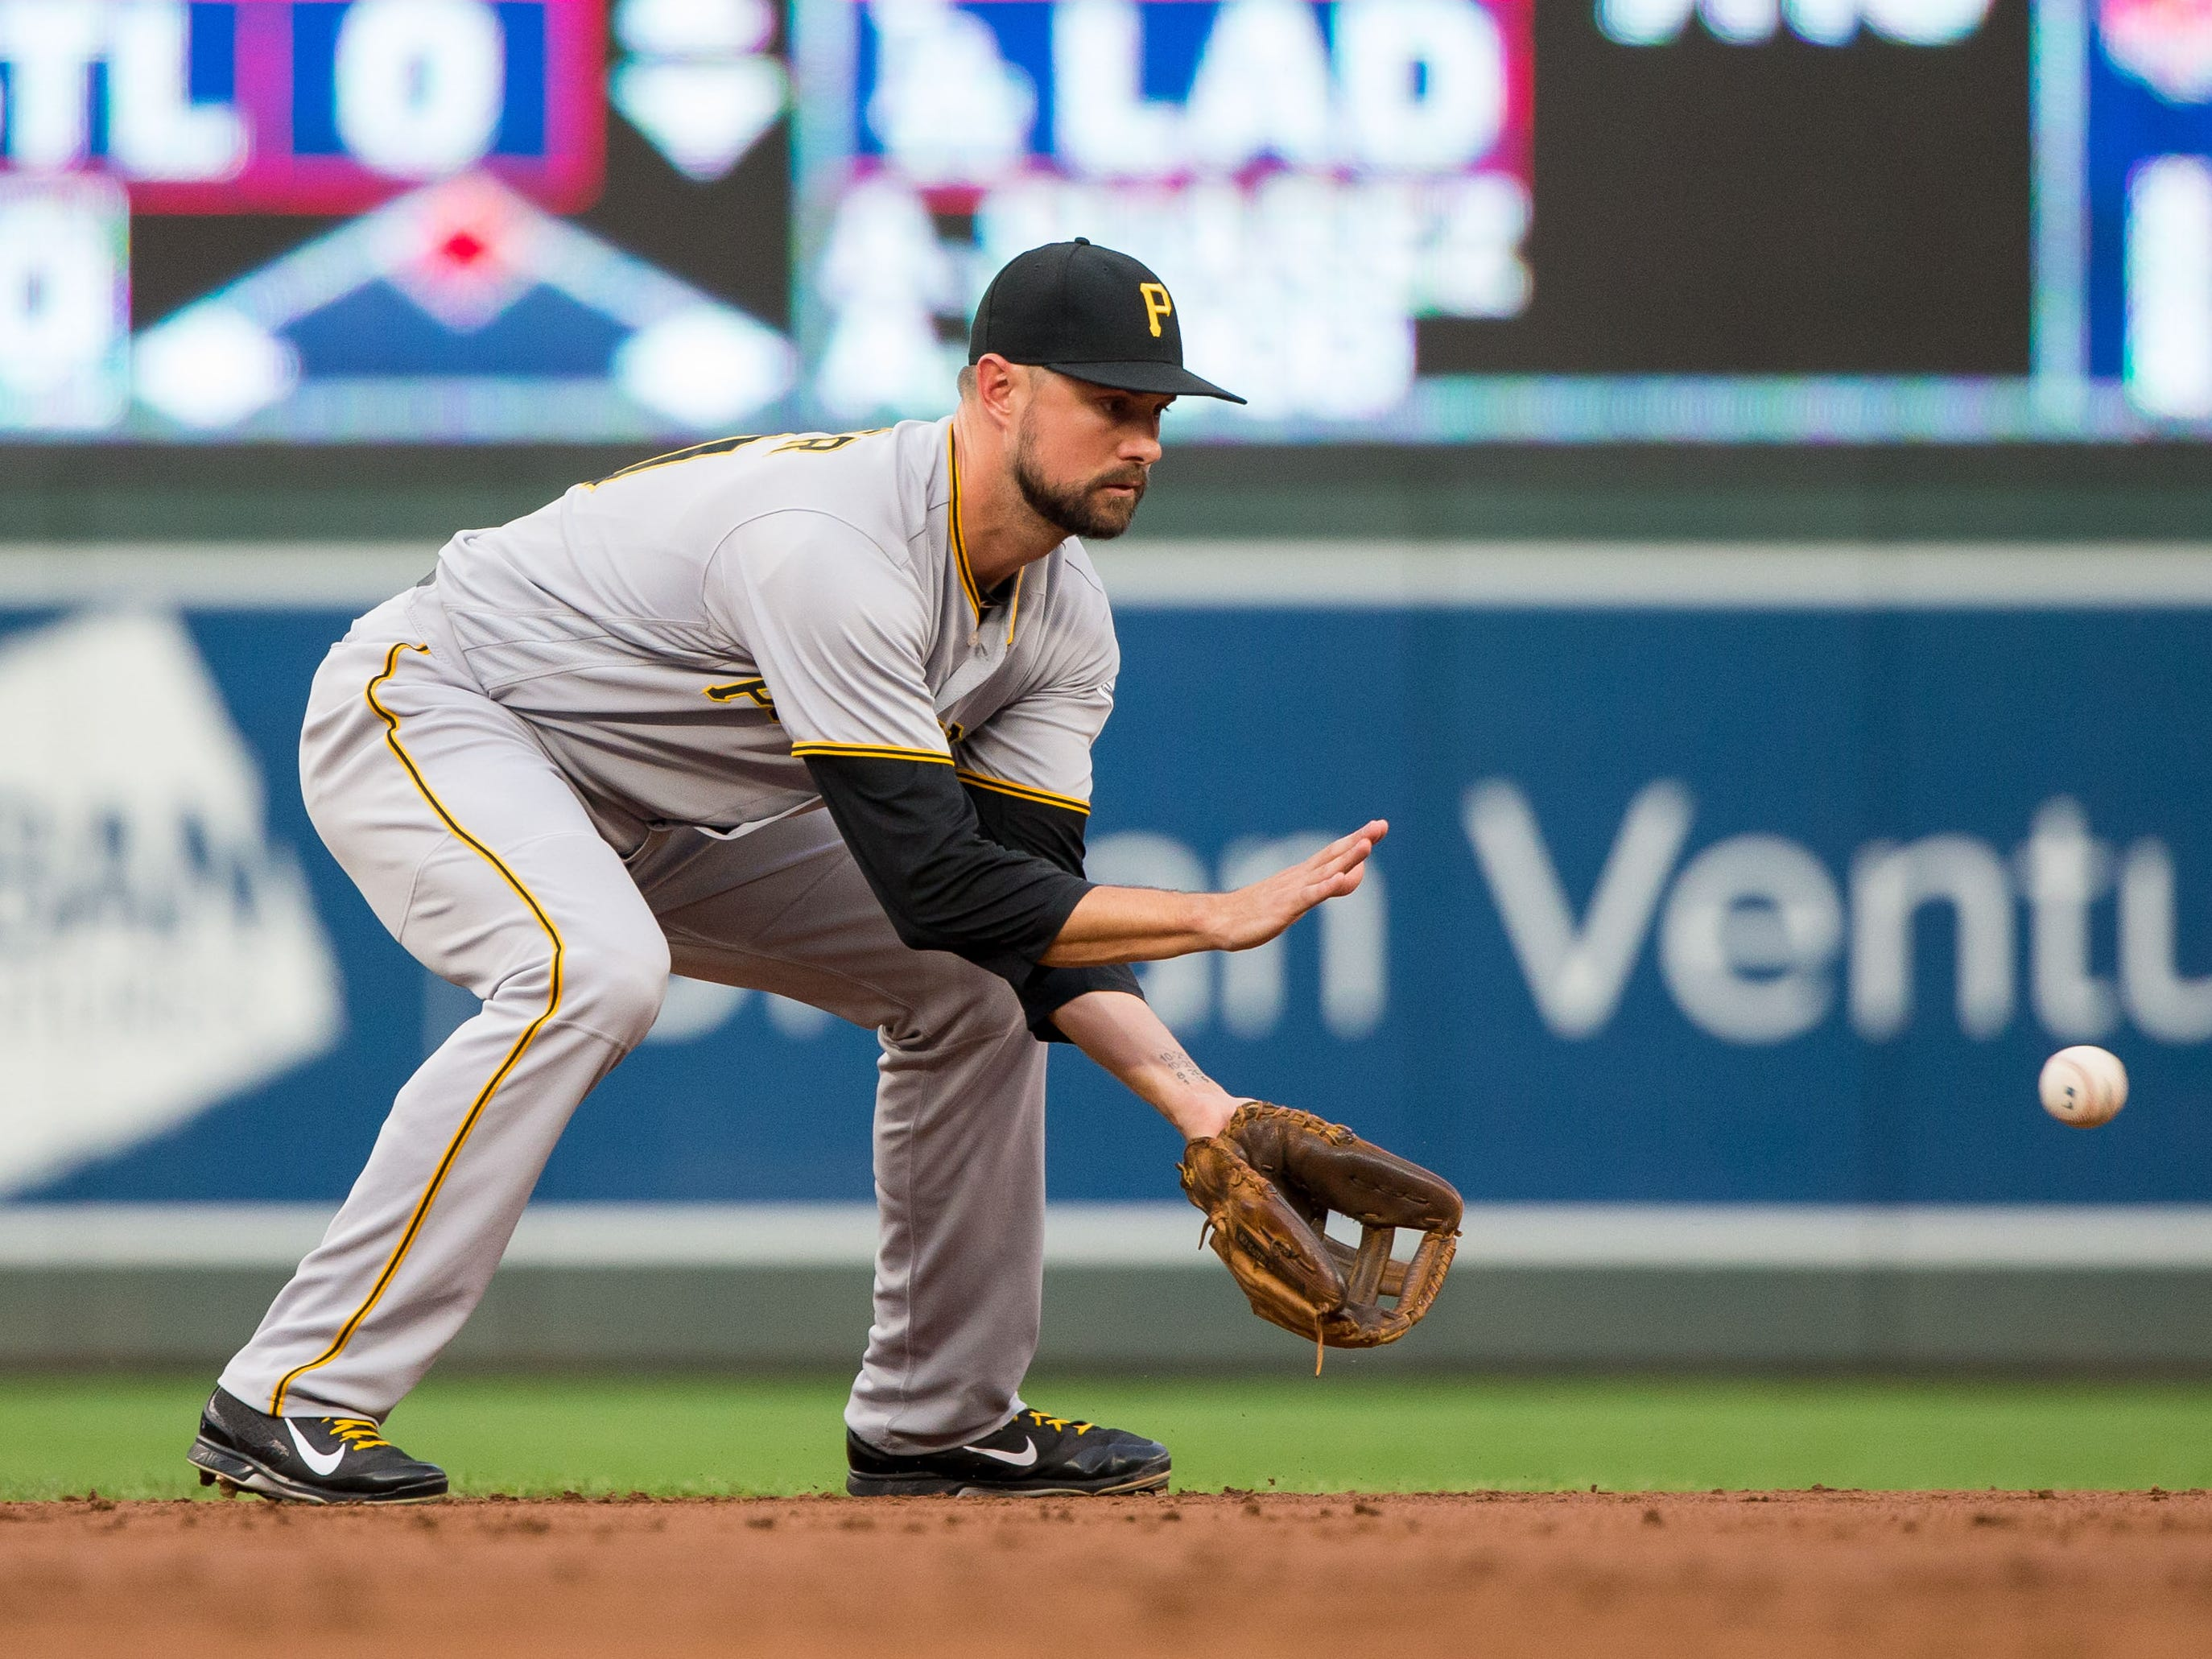 Pittsburgh Pirates shortstop Jordy Mercer fields a ground ball against Minnesota Twins at Target Field, Aug. 14, 2018.